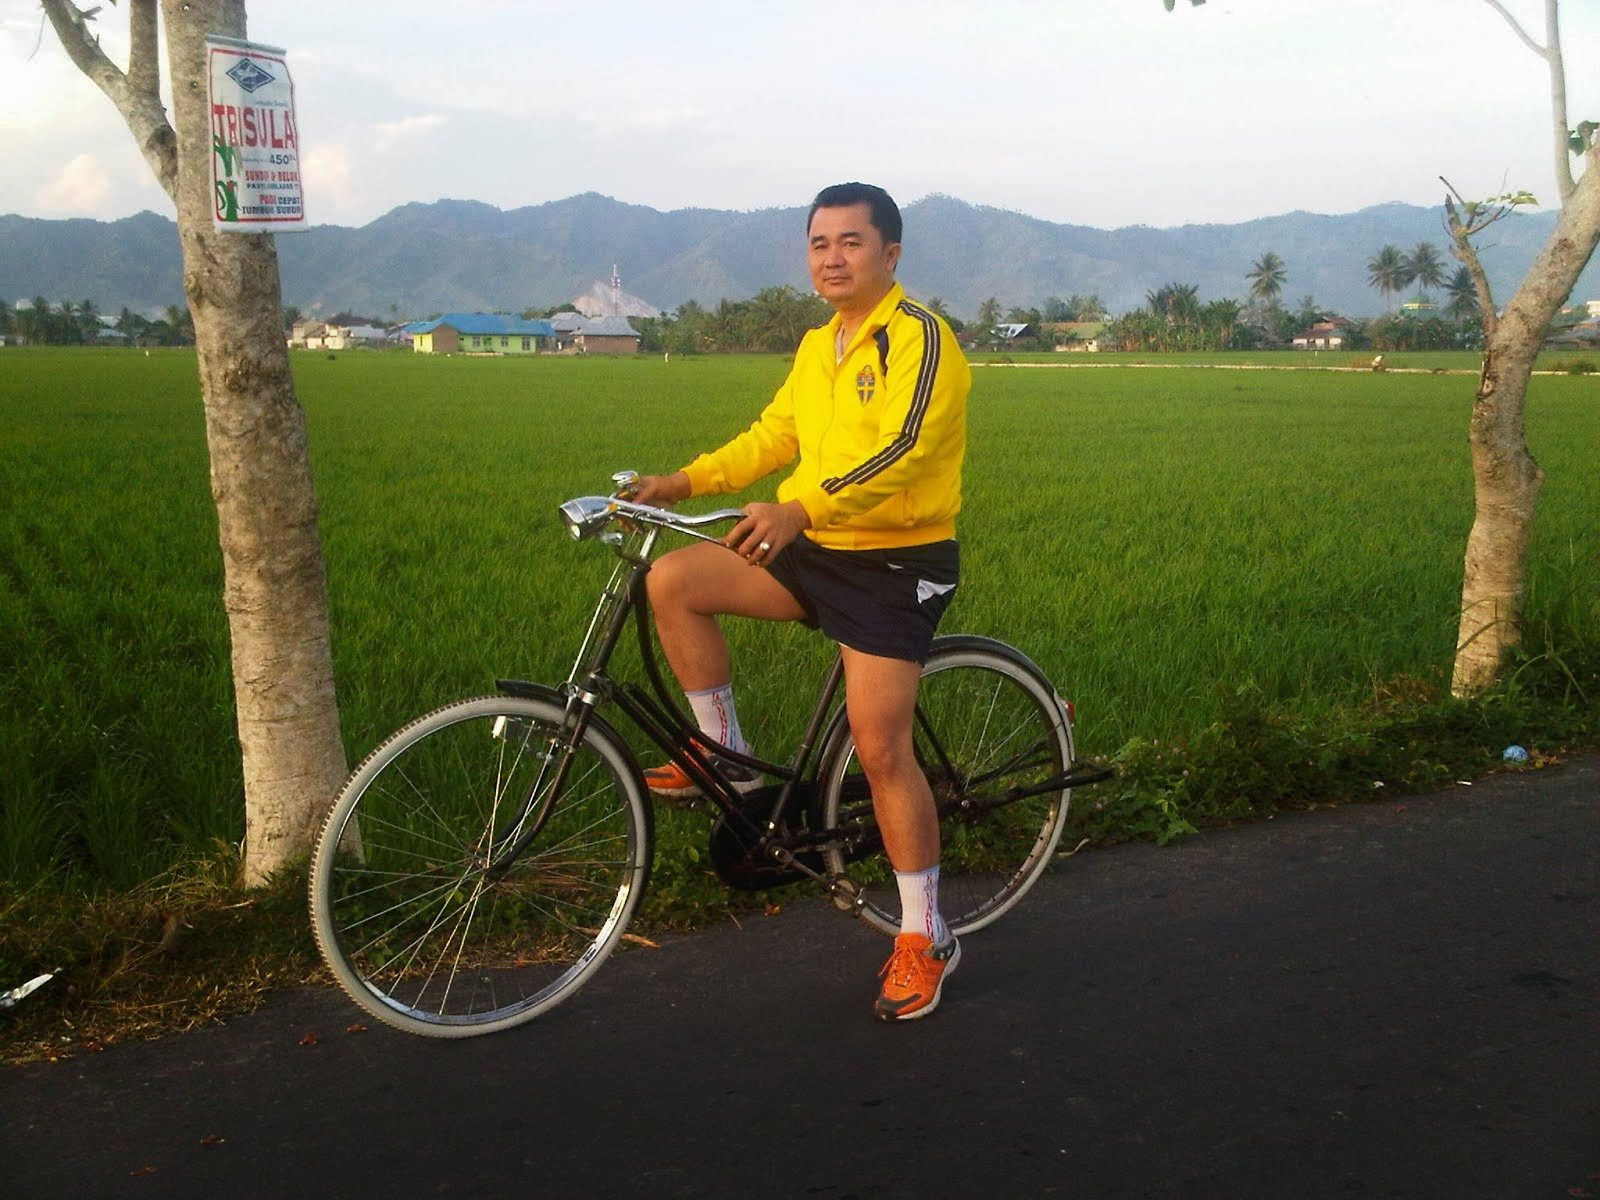 Gowes Onthel